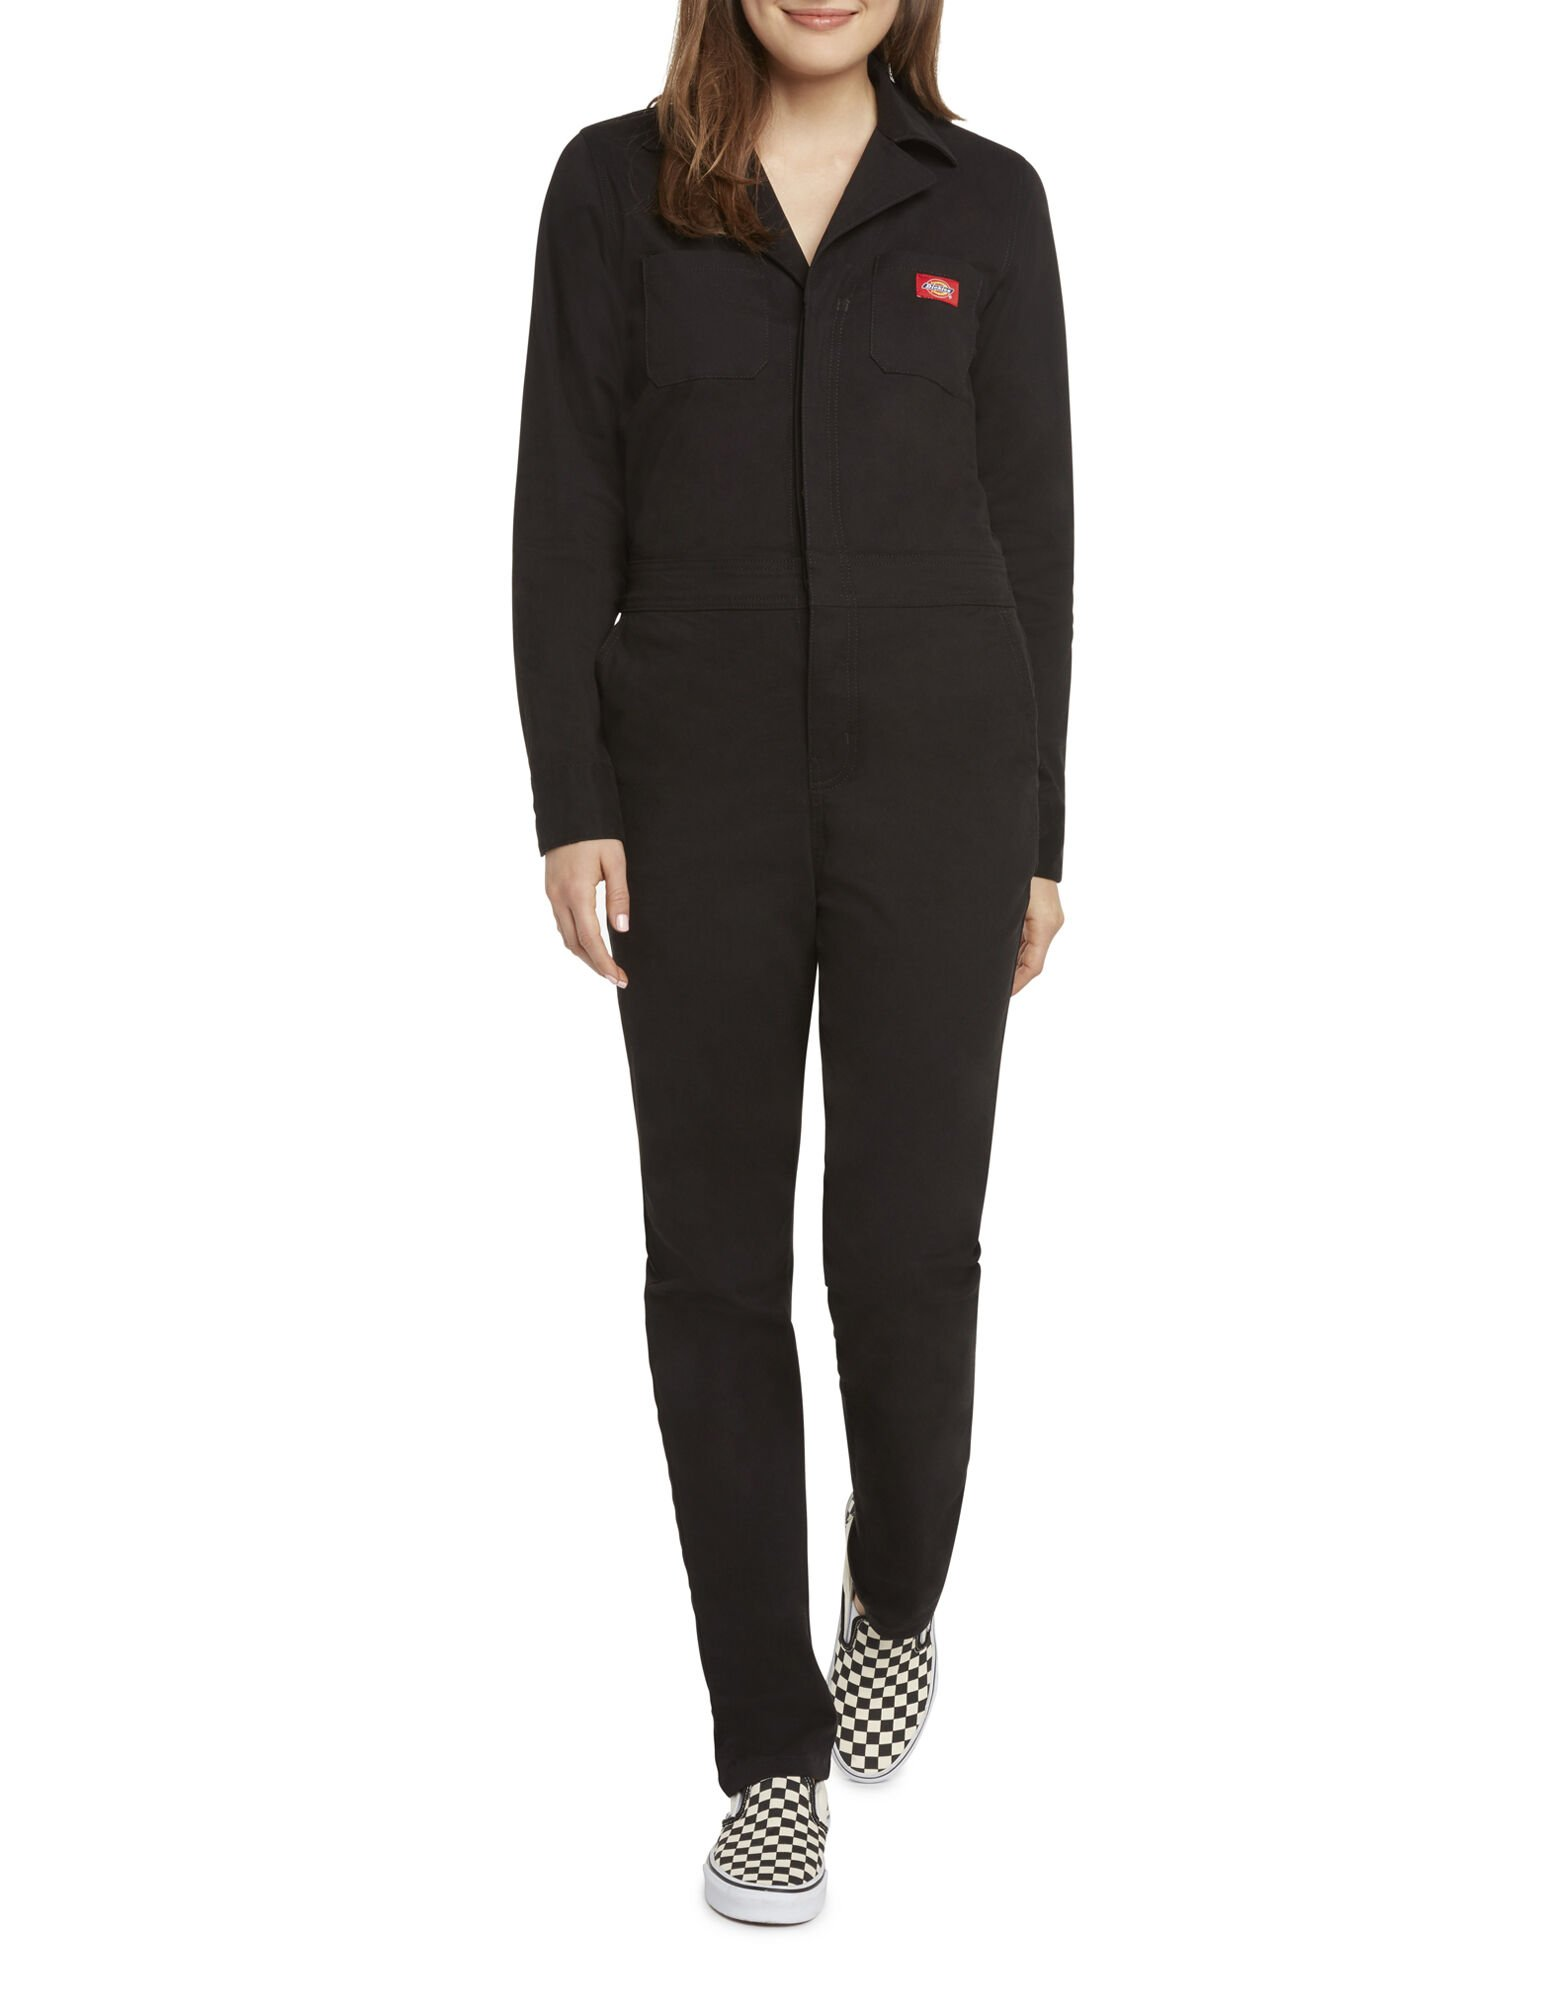 Dickies Girl Juniors' Button Front Coveralls by Dickies, available on dickies.com for $79.99 Gigi Hadid Dress Exact Product